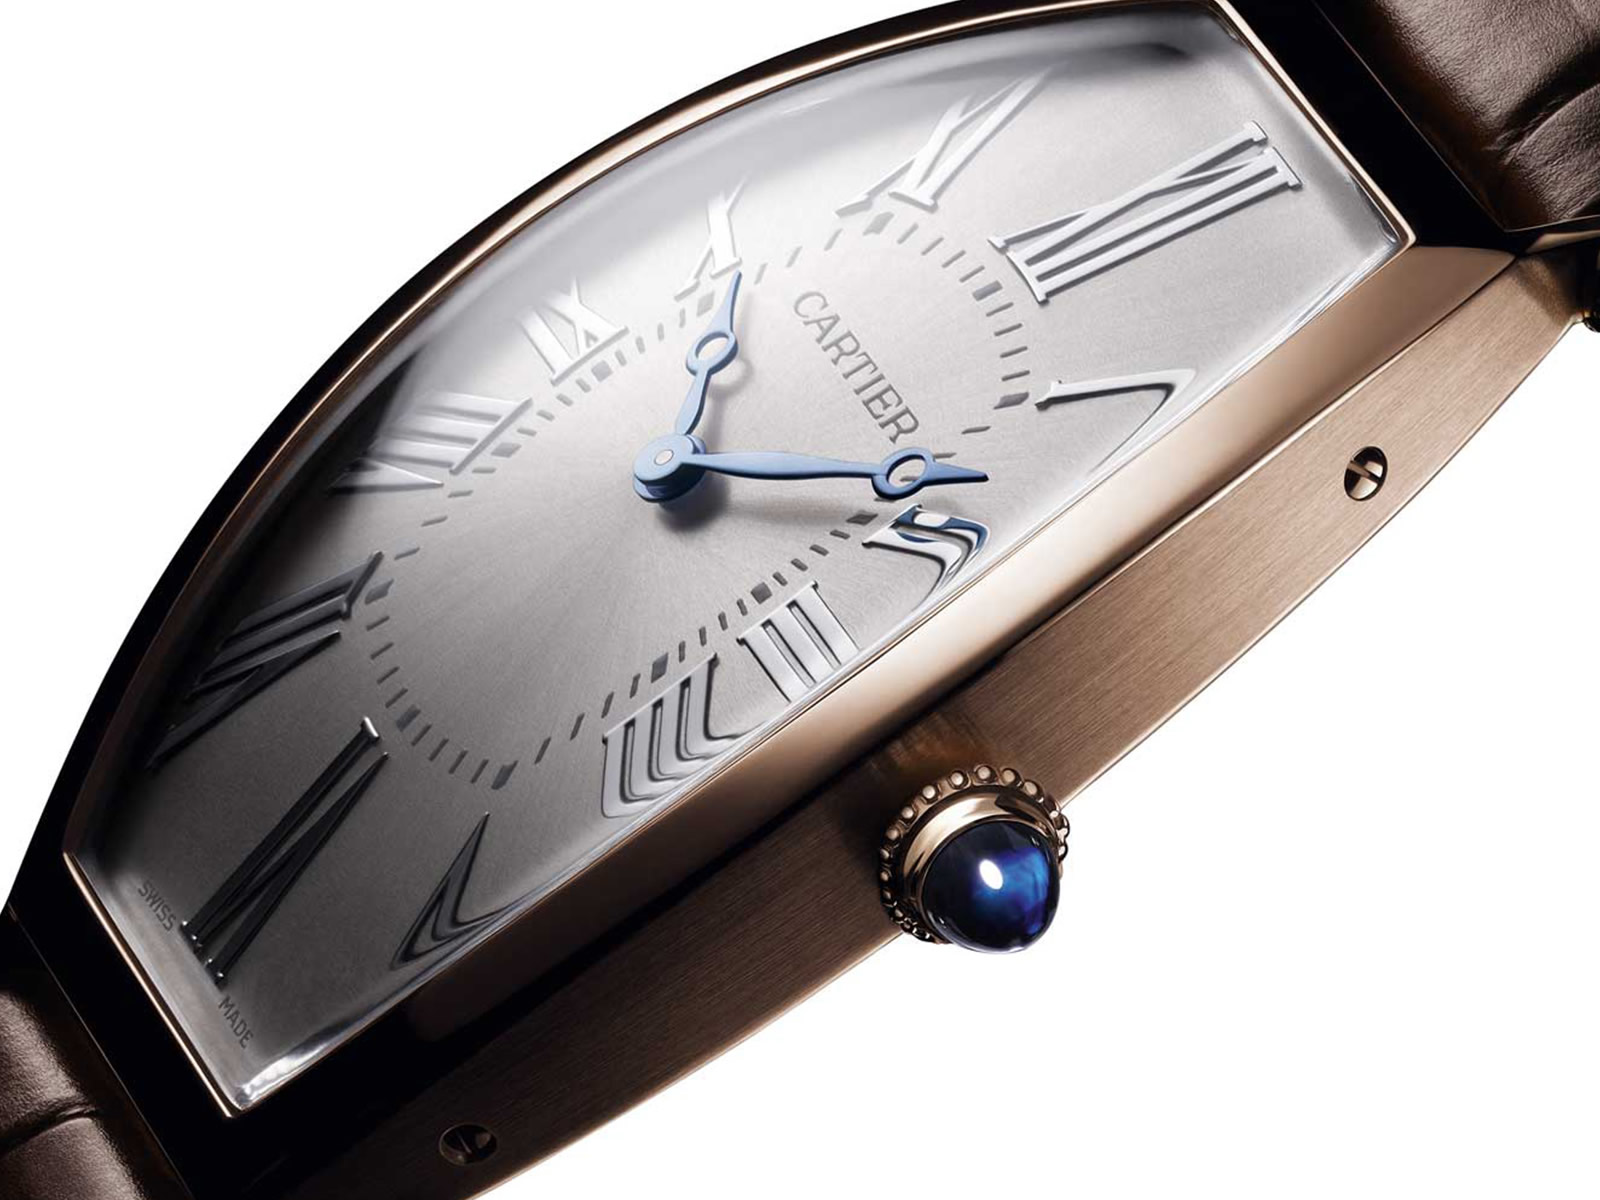 whtn0005-cartier-prive-tonneau-time-only-skeleton-dual-time-3-.jpg